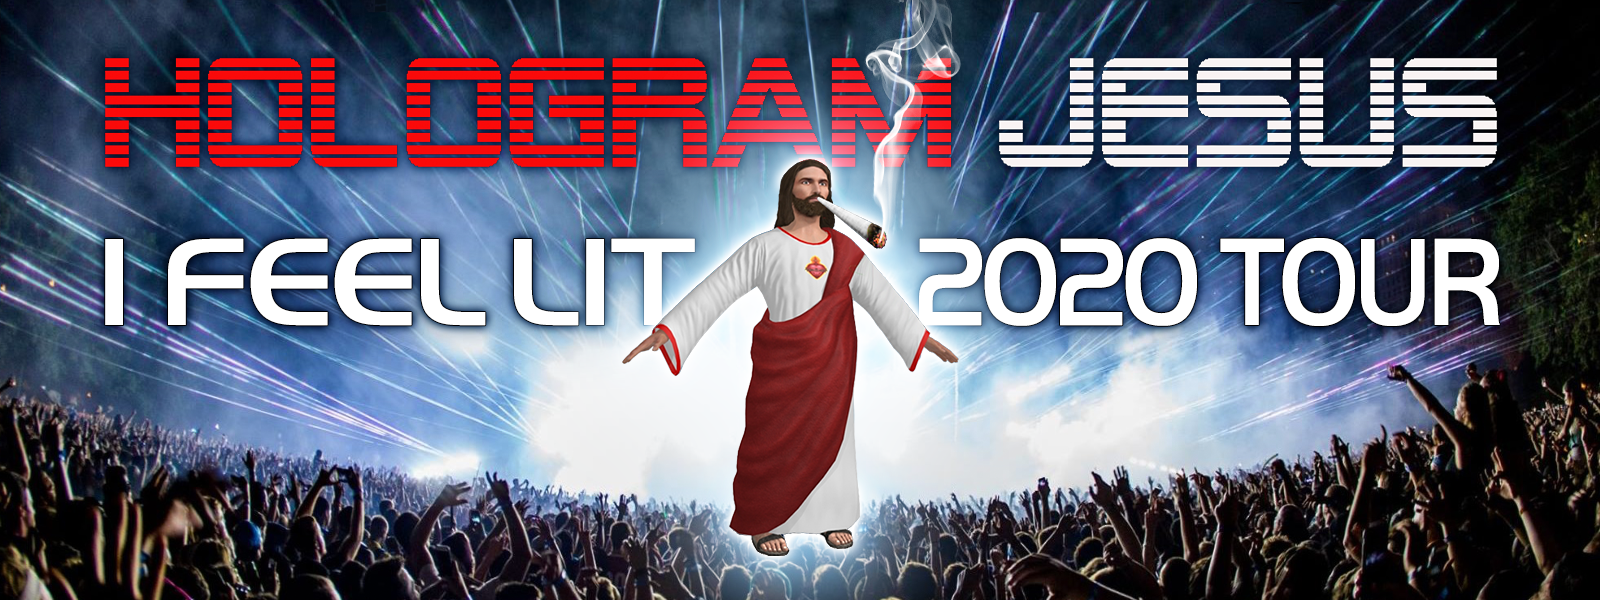 Hologram Jesus is Coming to Malibu This Easter Sunday, Saturday & Sunday April 12, 2020